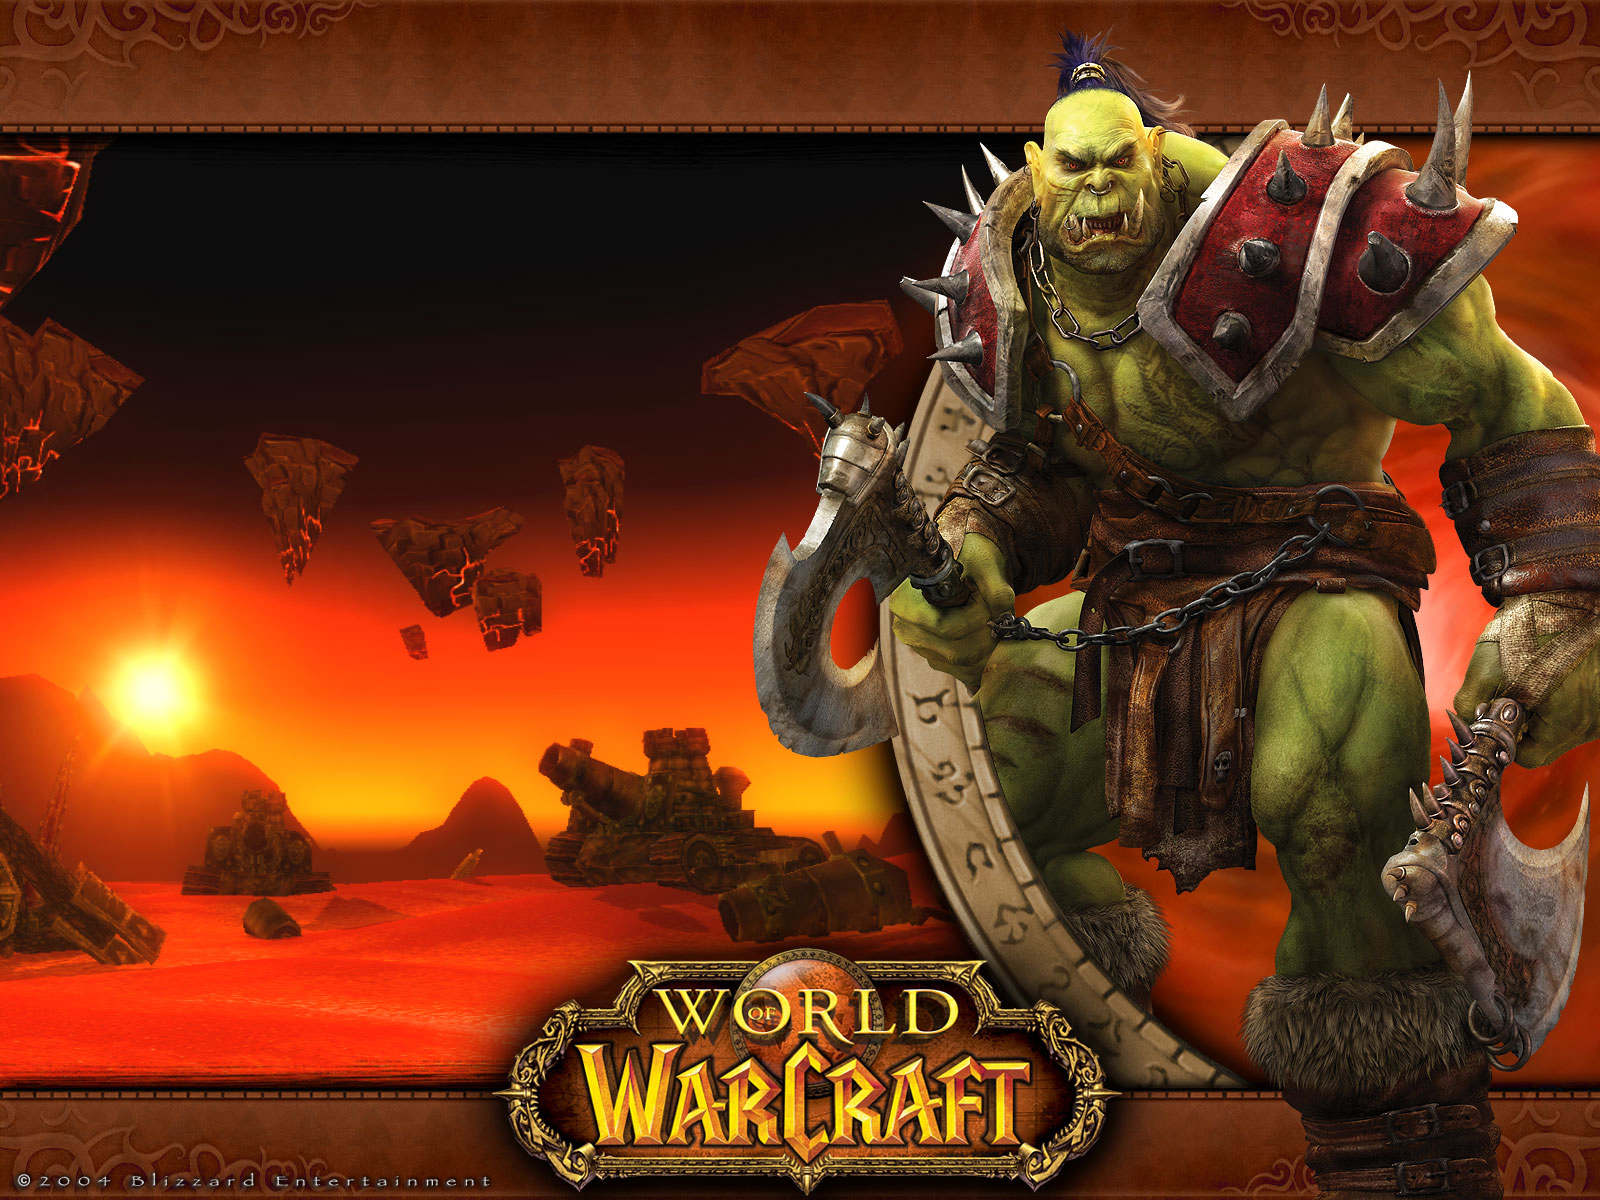 World of Warcraft orcs cartoon comic